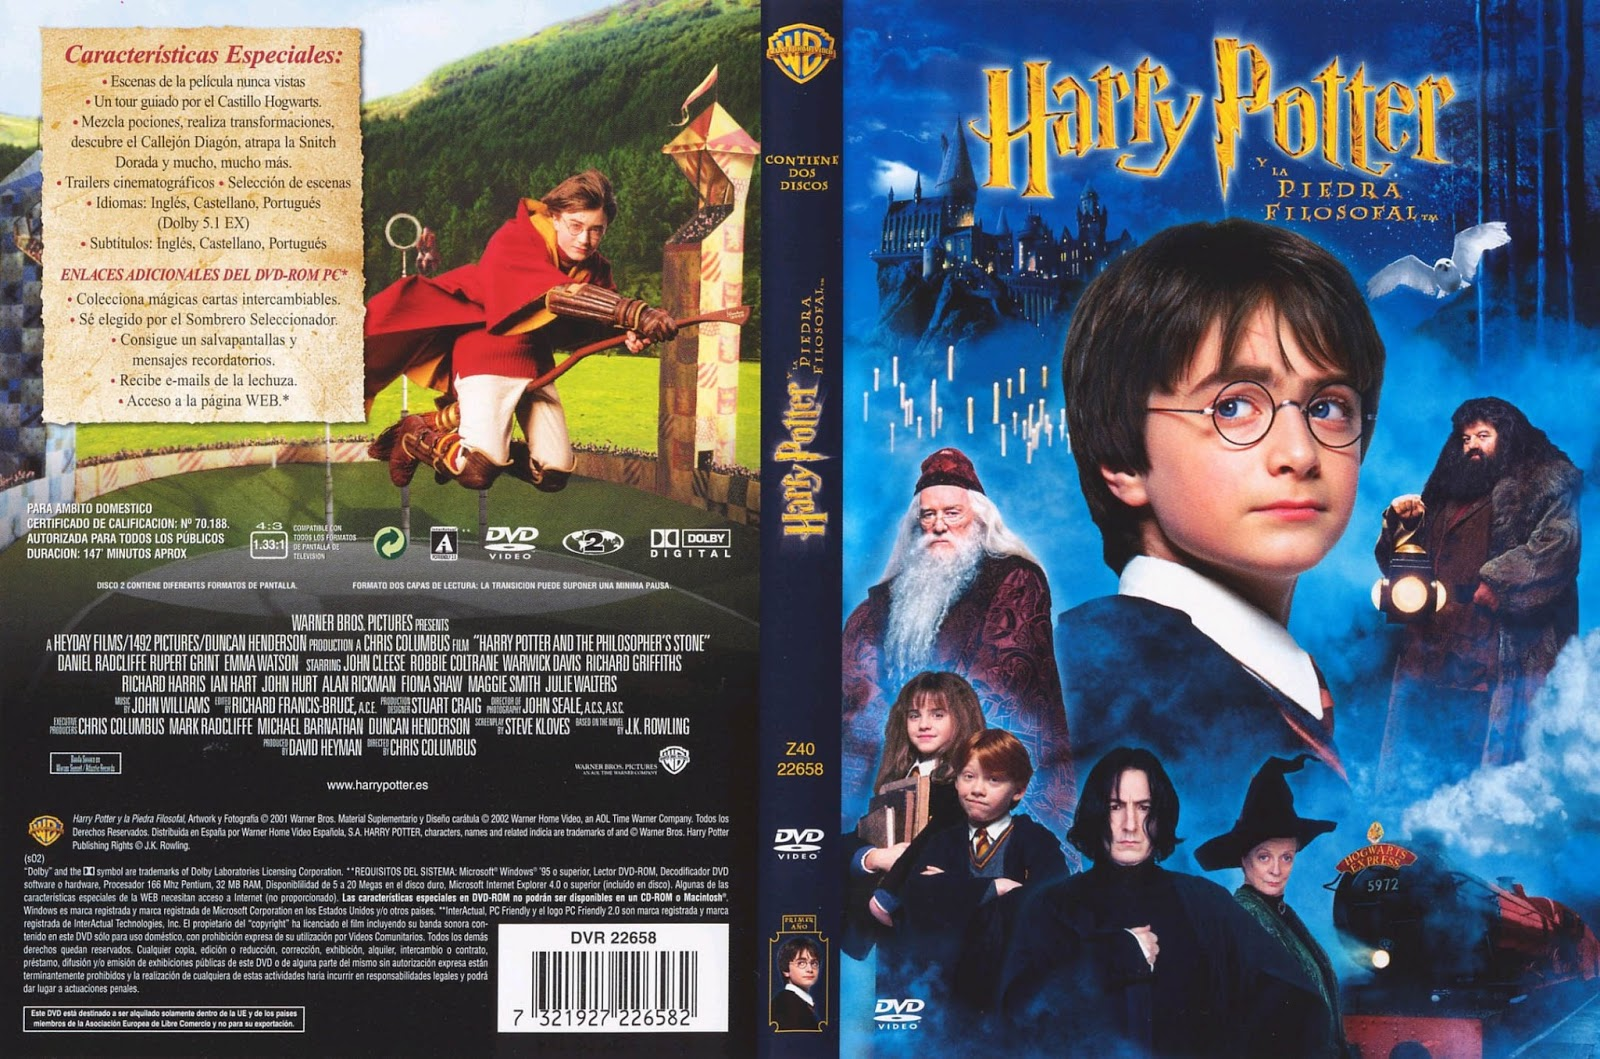 Harry Potter y la Piedra Filosofal DVD